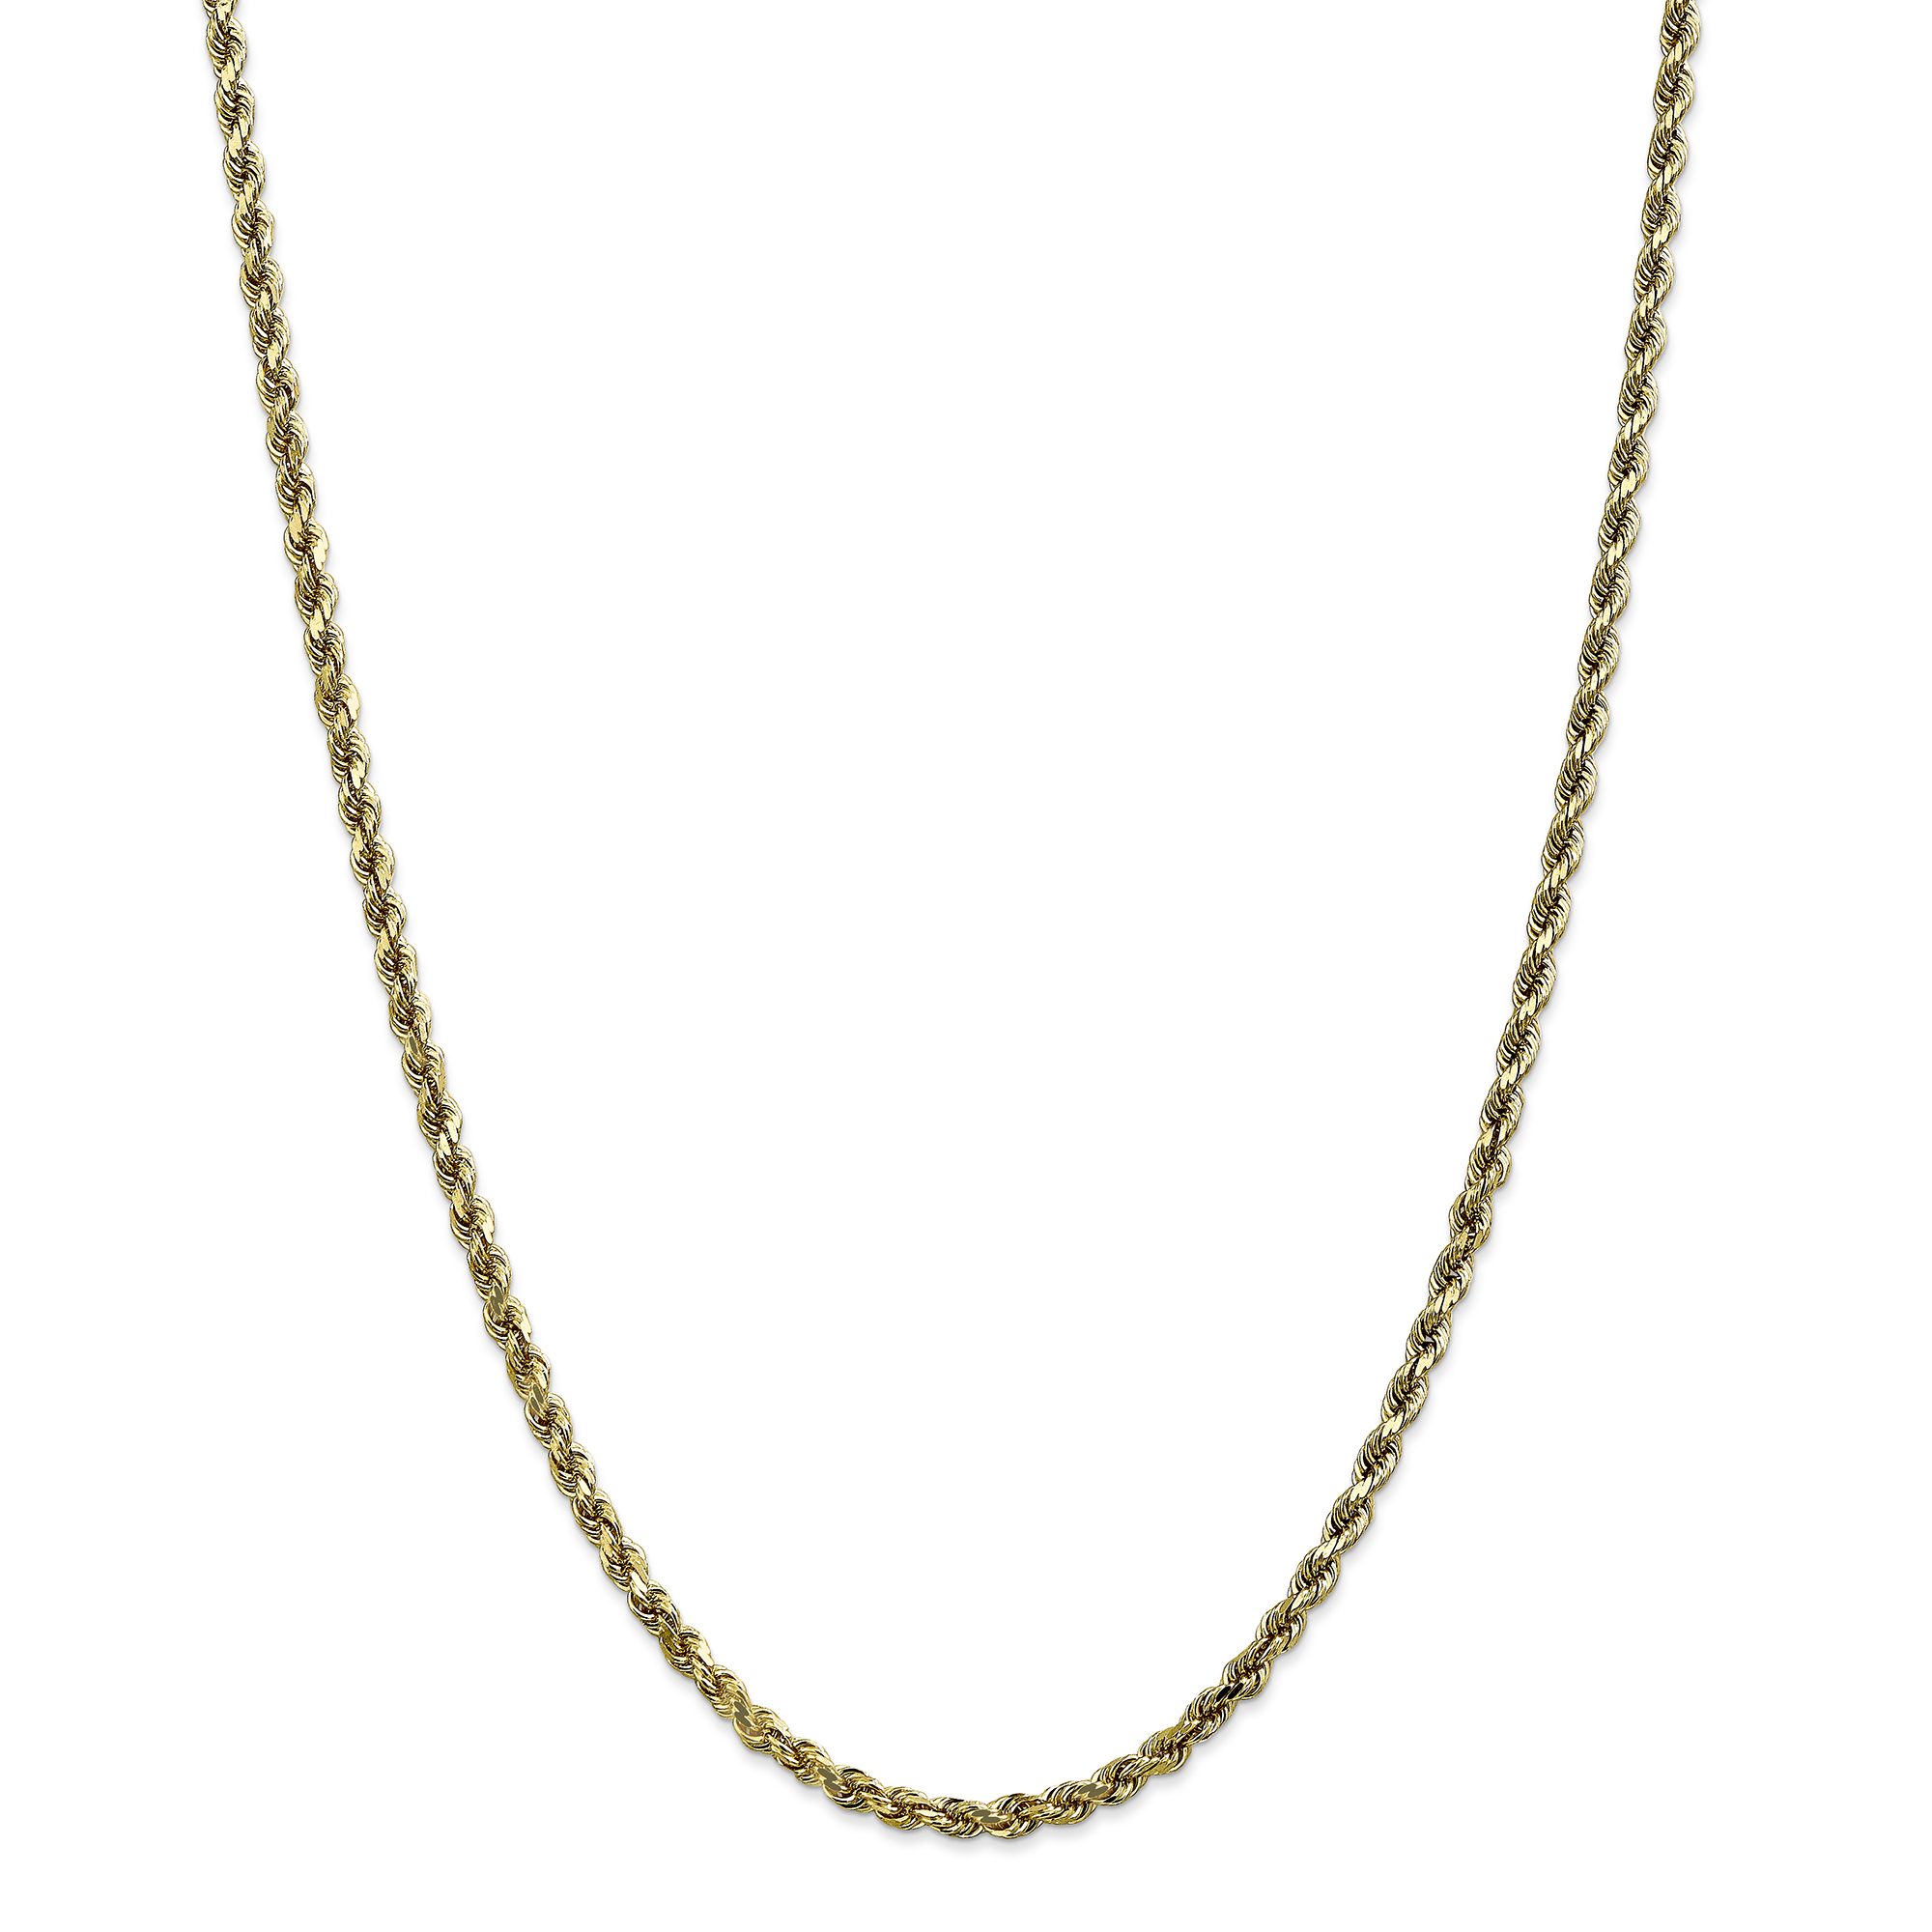 10k Yellow Gold 3.5mm Link Rope Chain Necklace 20 Inch Pendant Charm Handmade Fine Jewelry Gifts For Women For Her - image 5 de 5